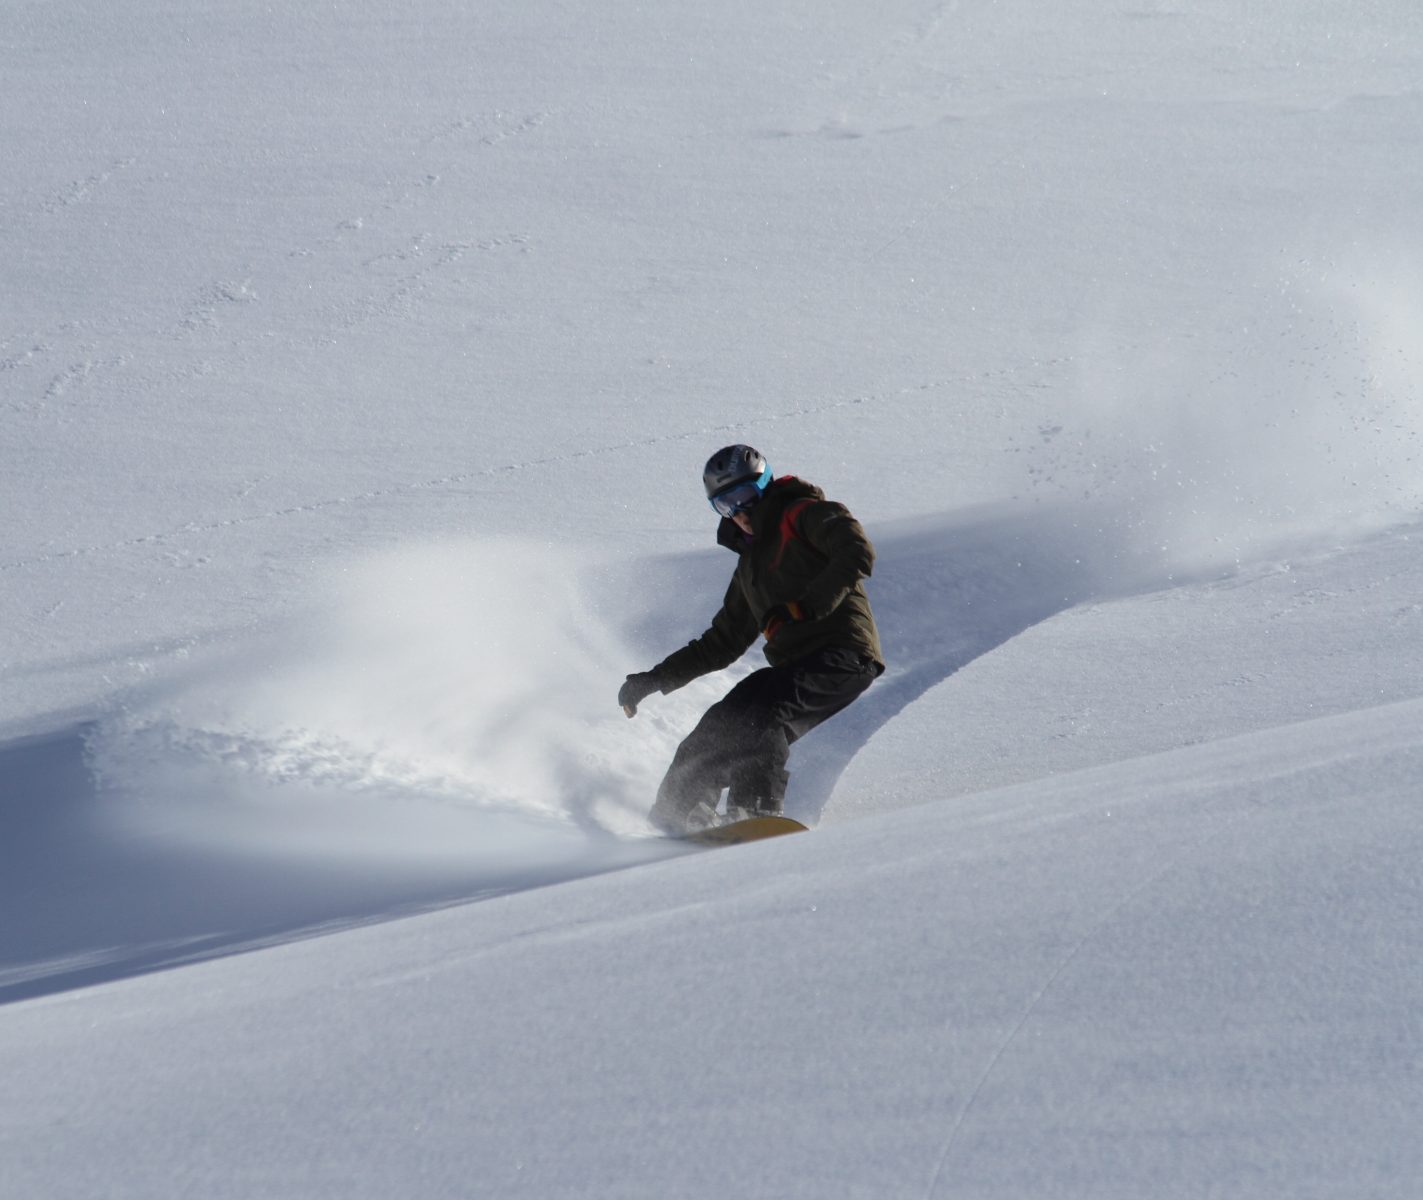 No queues or untracked terrain out here in the backcountry of NZ…